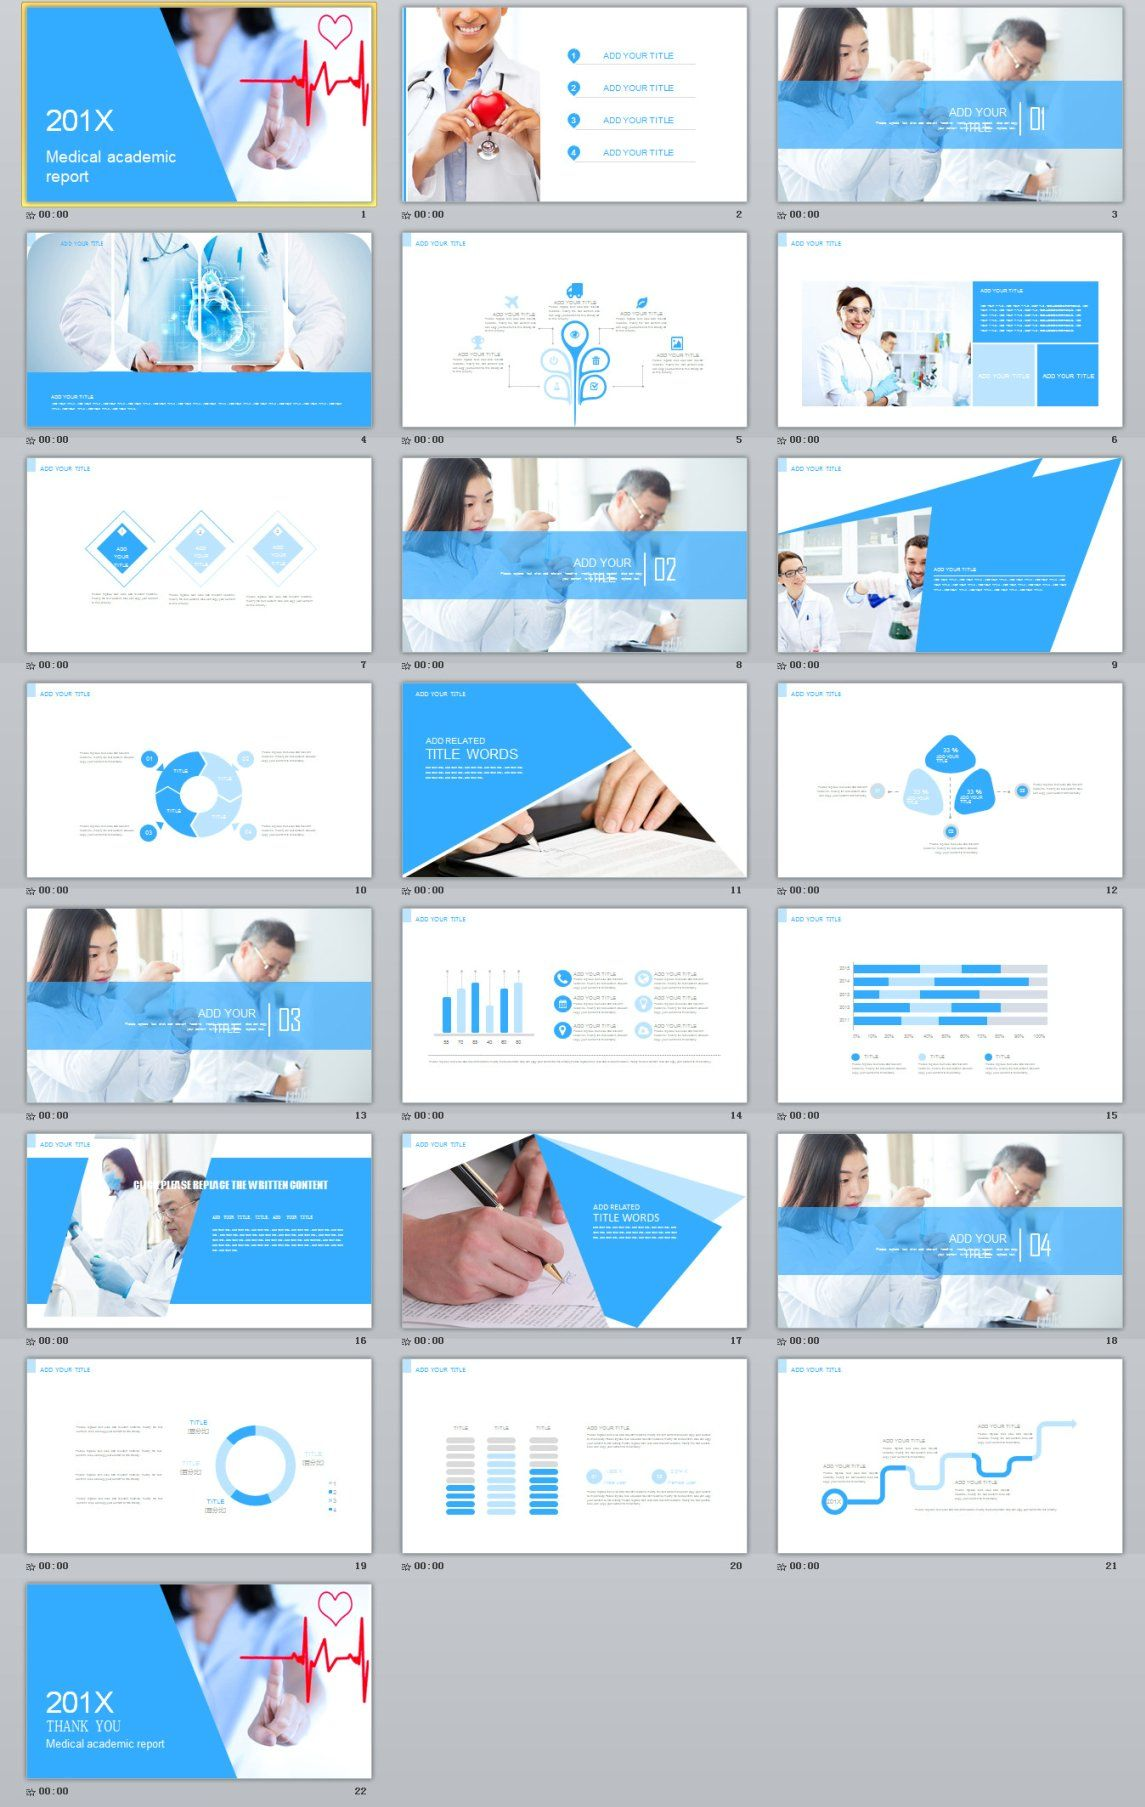 Medical And Health Report Powerpoint Template Pcslide Com Powerpoint Presentation Infographic Ppt Te Powerpoint Templates Medical Infographic Powerpoint